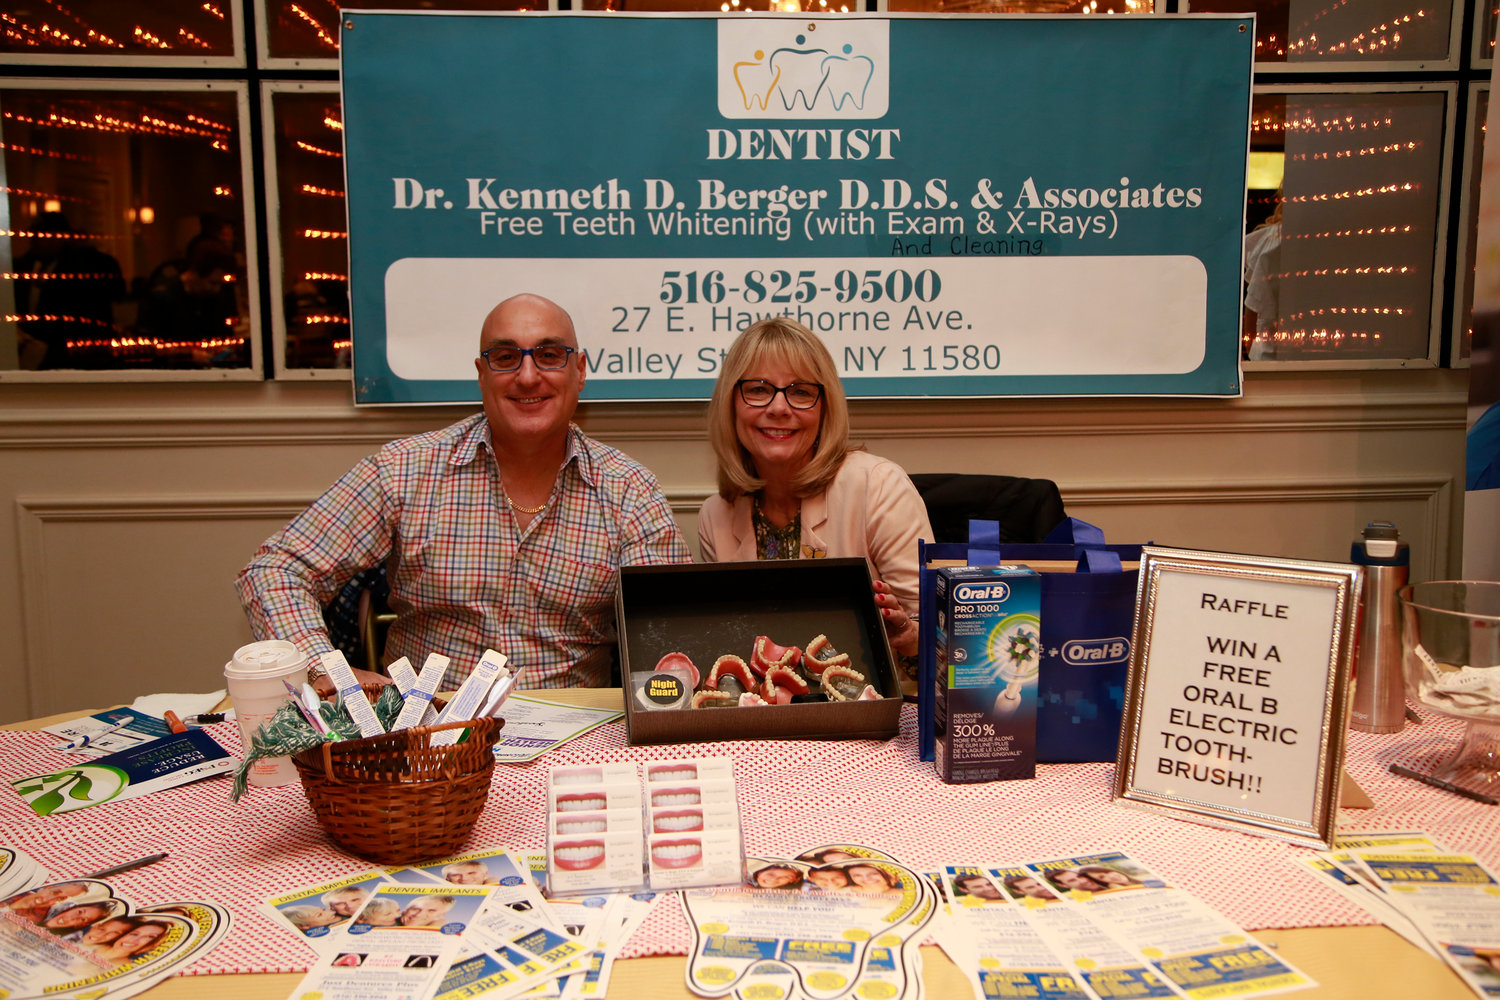 Dr. Kenneth Berger, a dentist, and Lindsay Charles spoke to attendees about dental care.